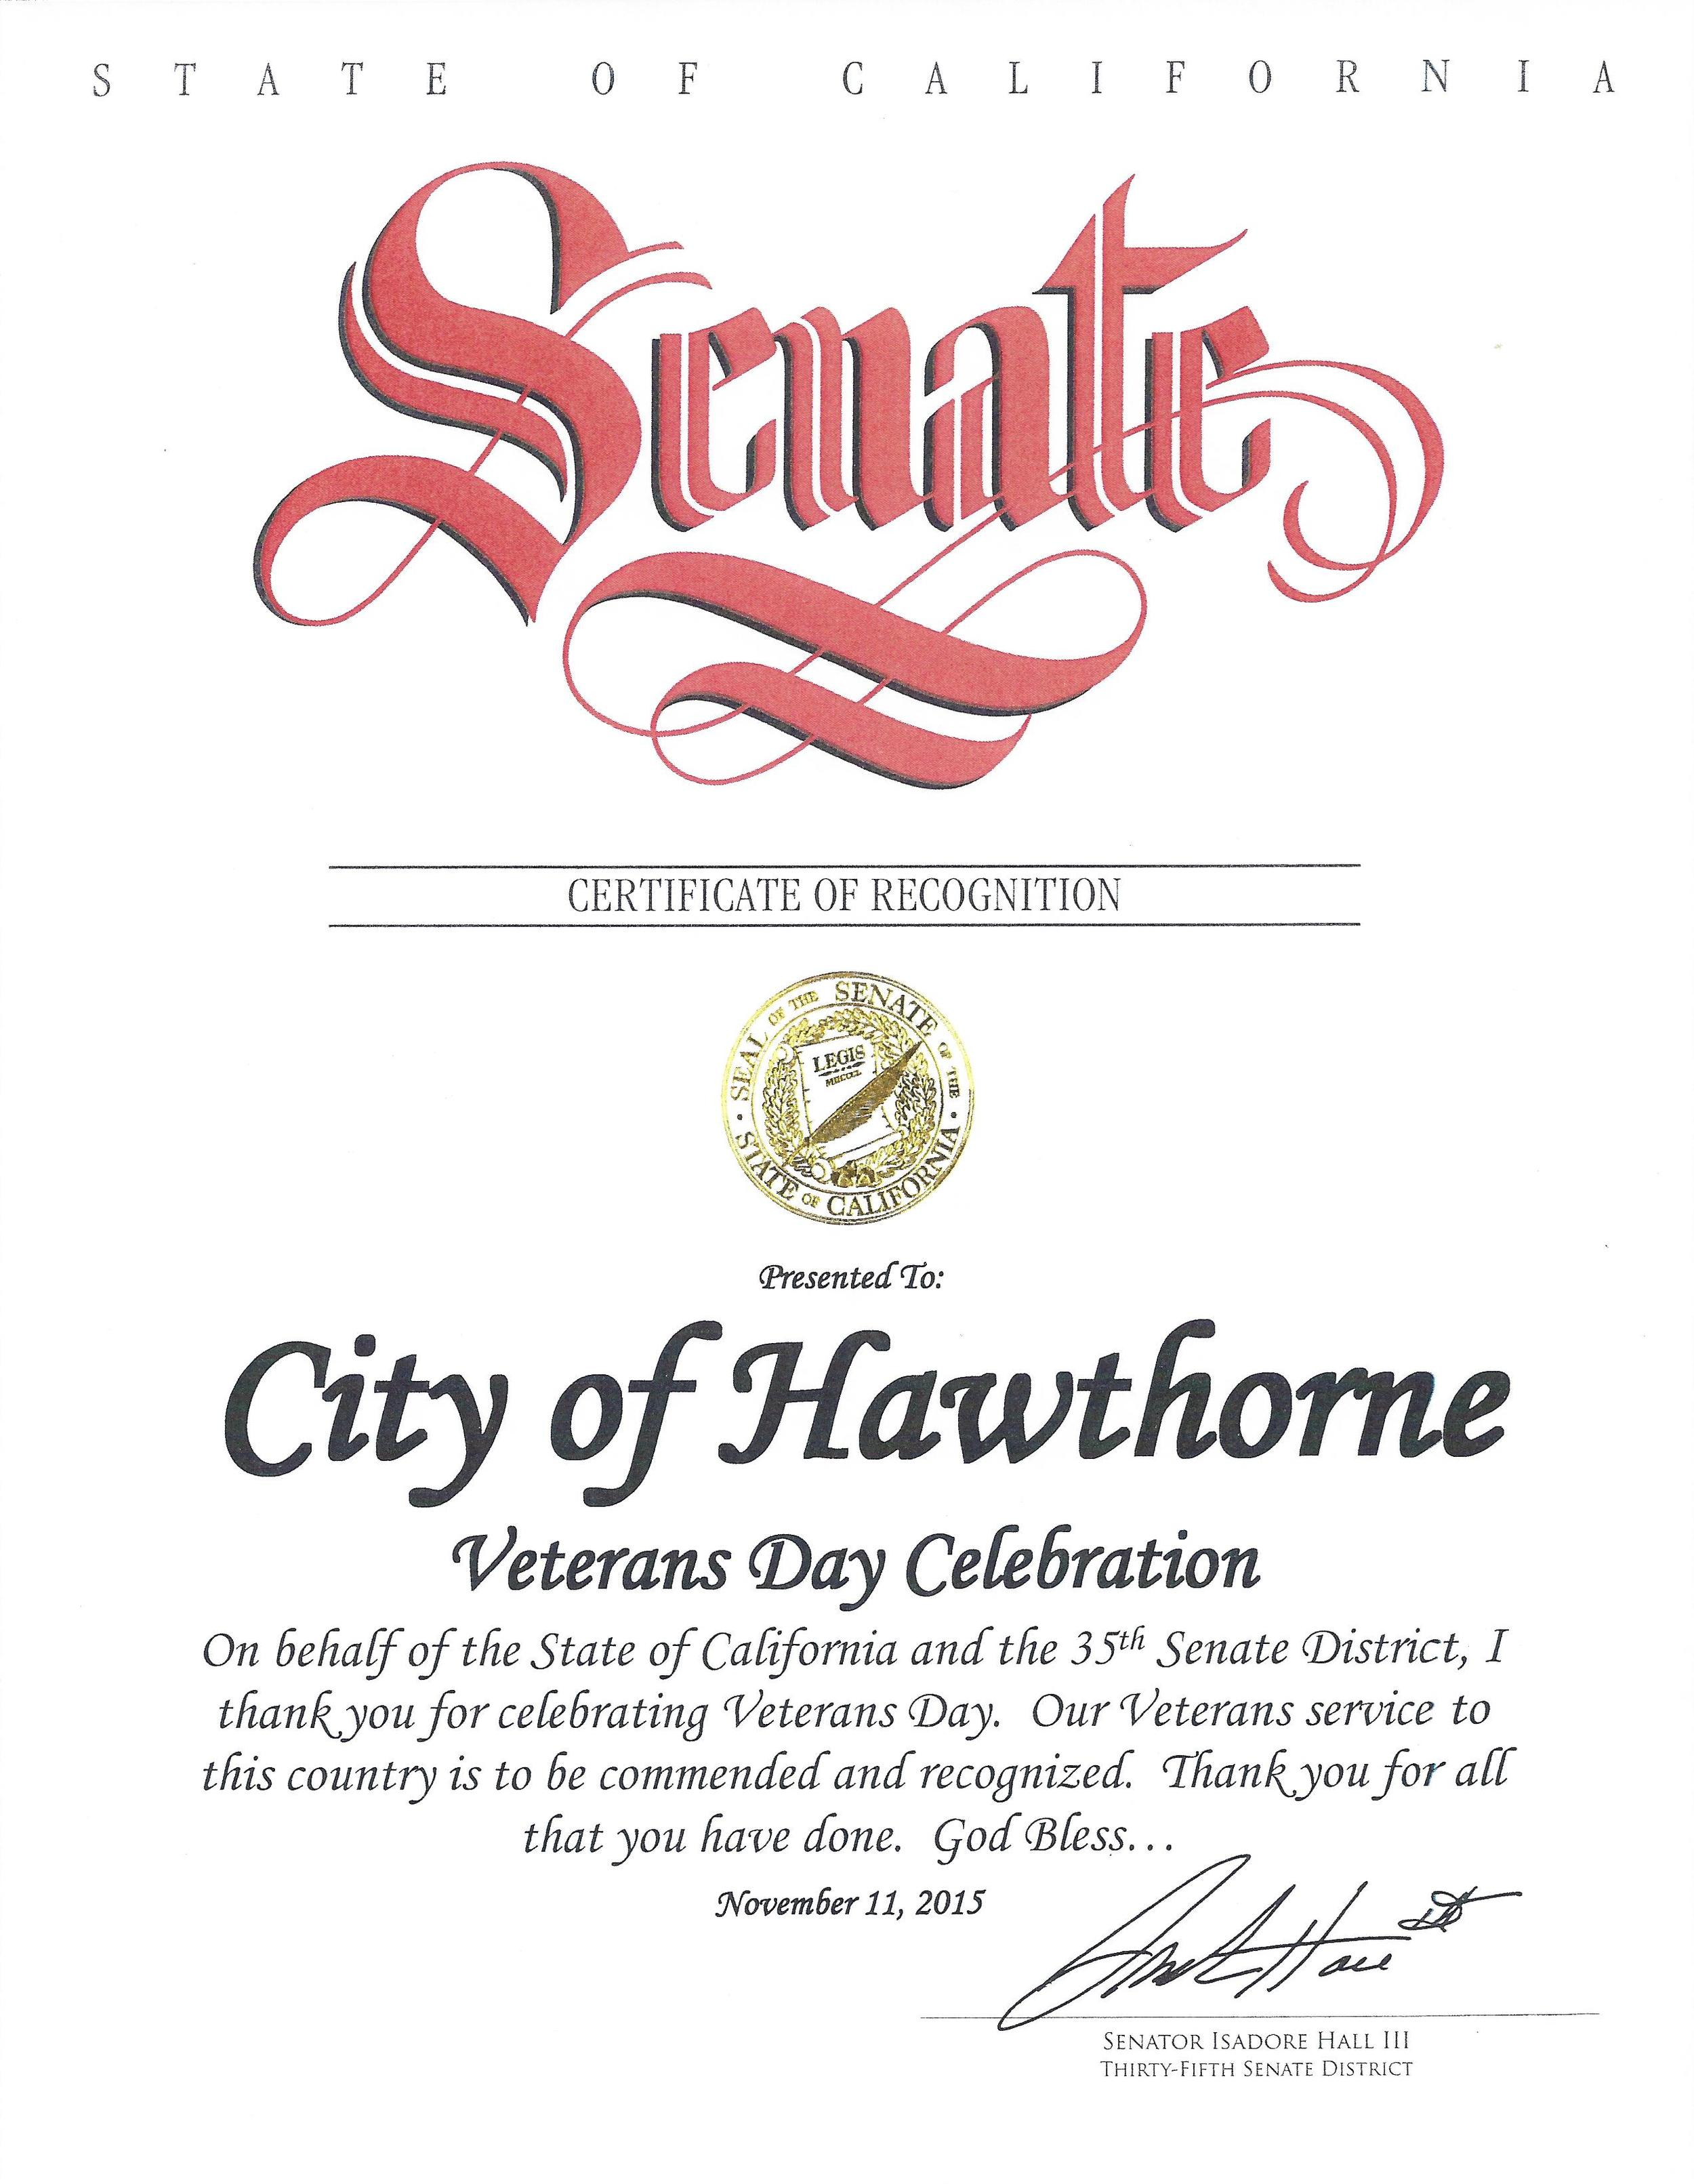 Certificate of Recognition Veteran's Day Celebration 2015